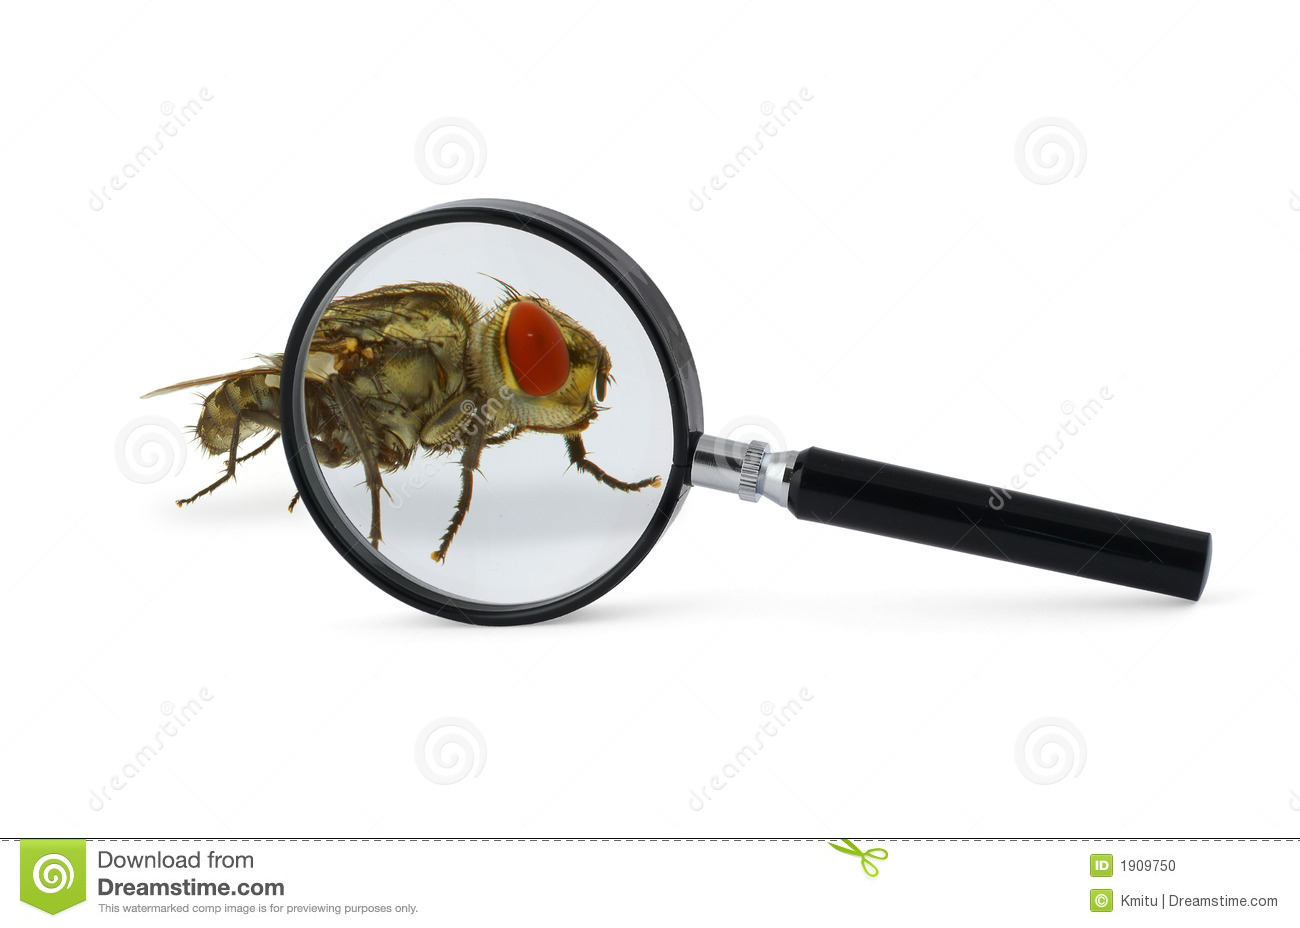 Magnified Fly Insect Stock Photo - Image: 1909750